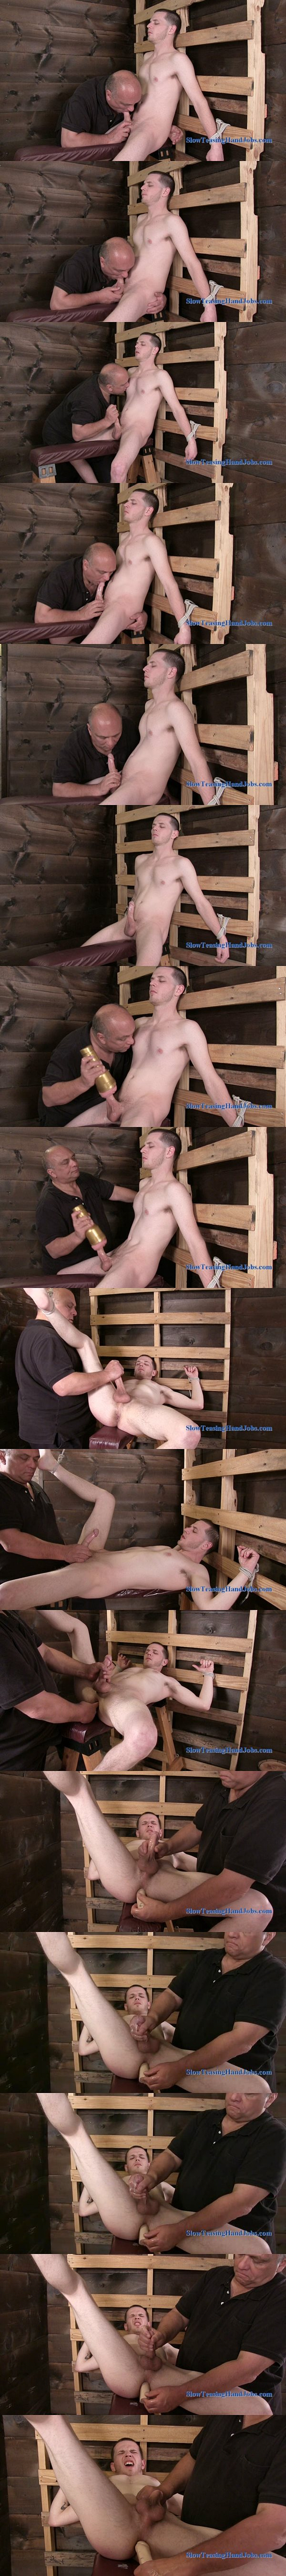 Cute straight lad Michael dildo-fucked and jerked off in What's Wrong With Me at Slowteasinghandjobs 02